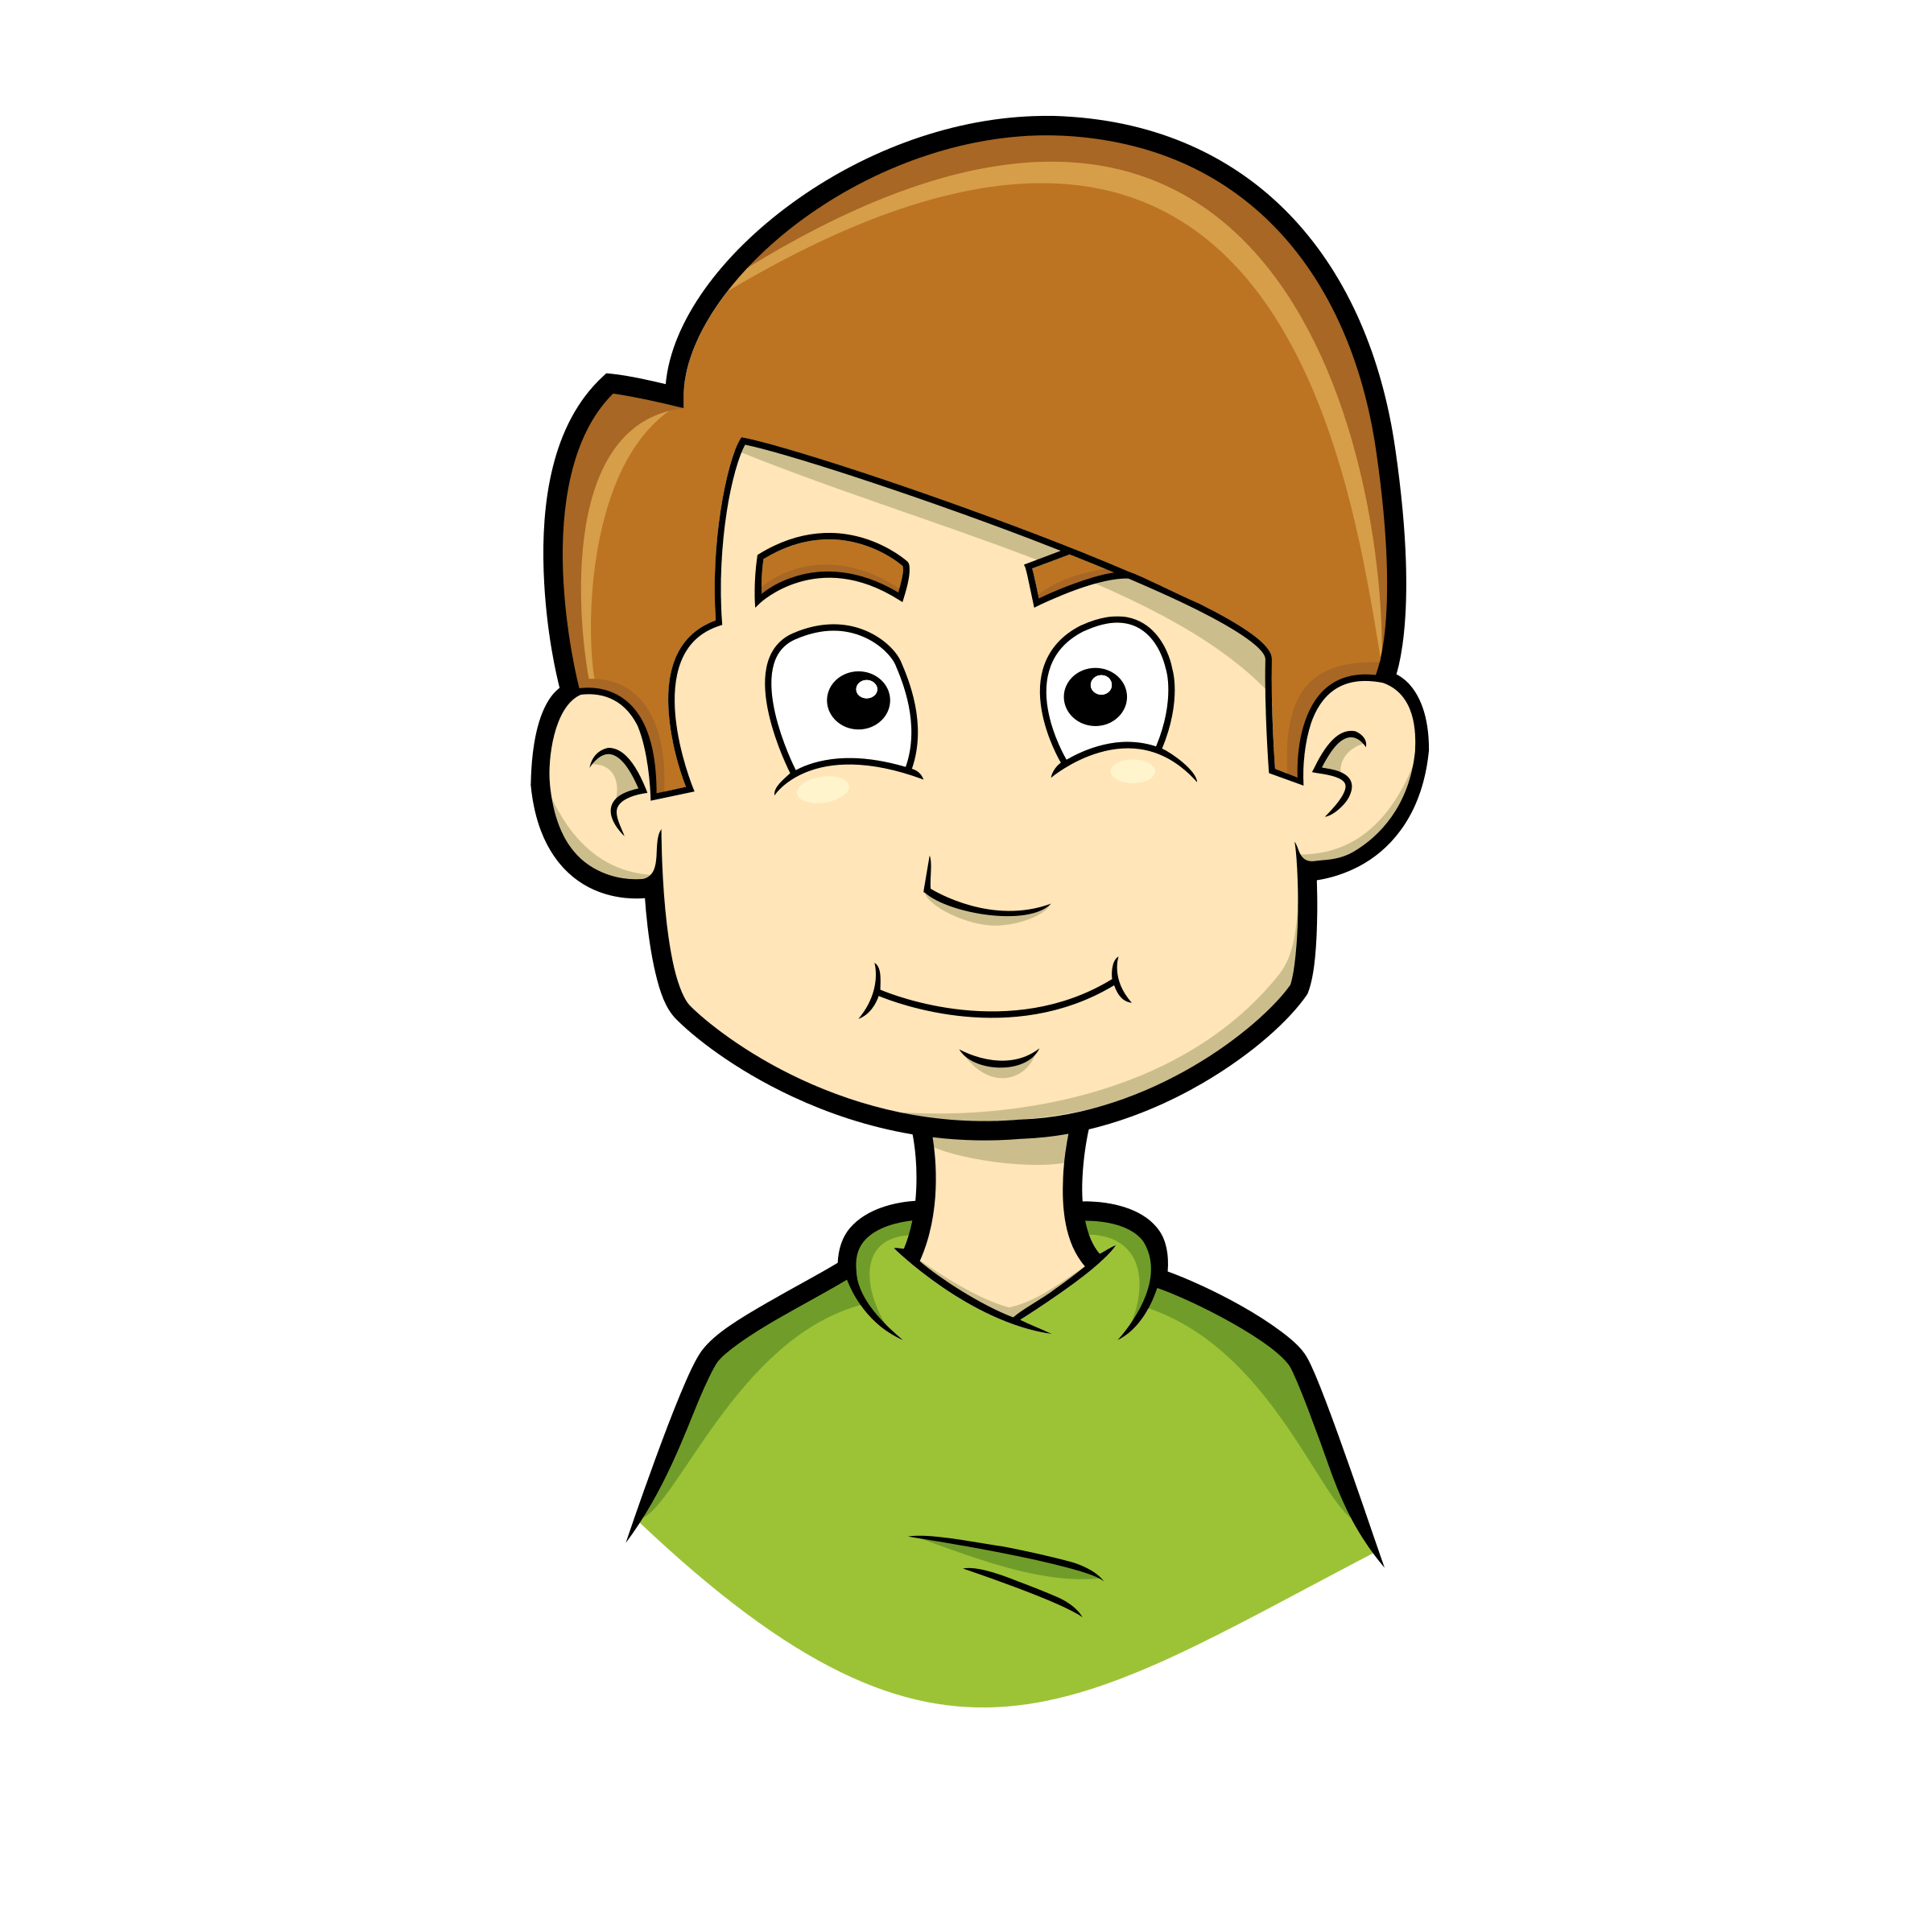 Hurt clipart boy. Smile cliparts free collection